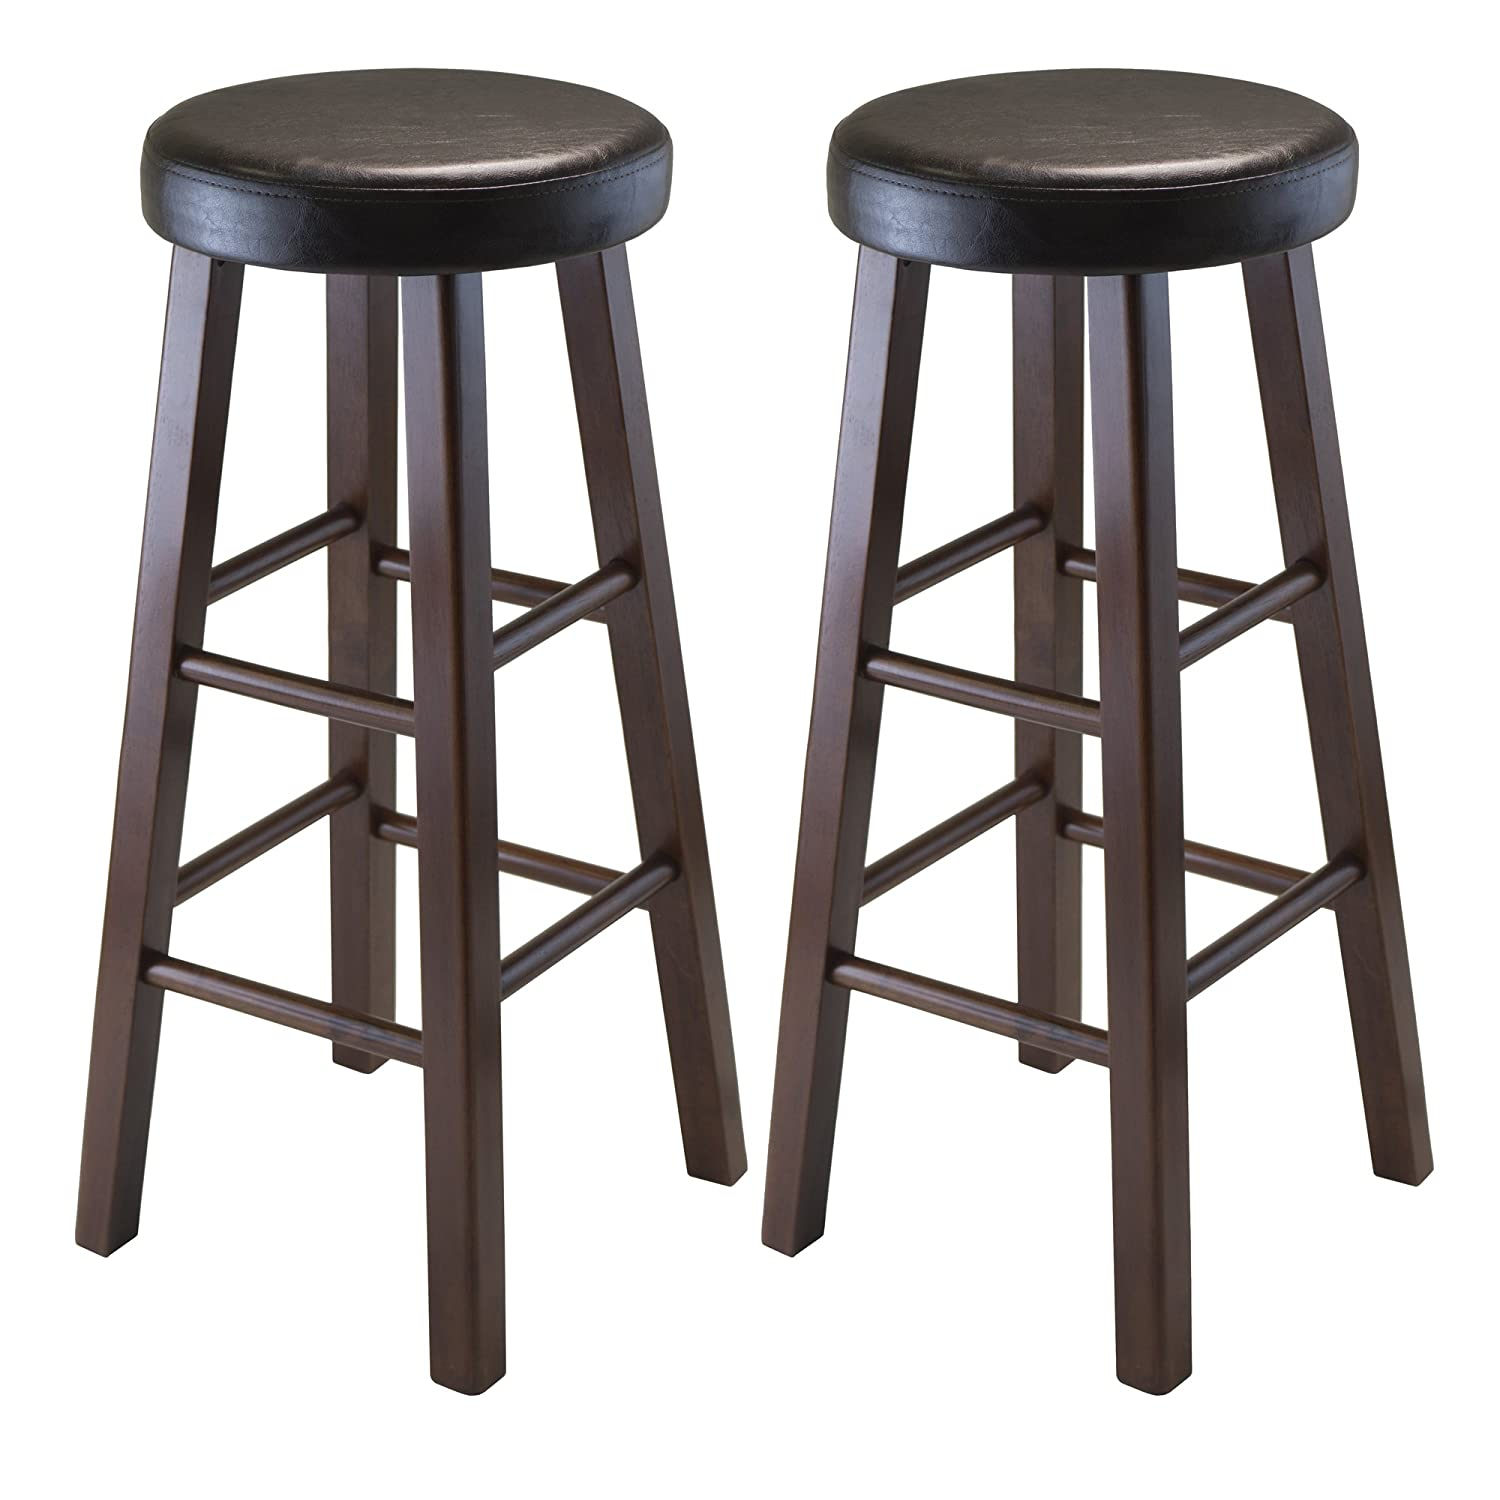 Enjoyable 35 Best Cheap Bar Stools You Can Buy For Under 80 In 2019 Uwap Interior Chair Design Uwaporg